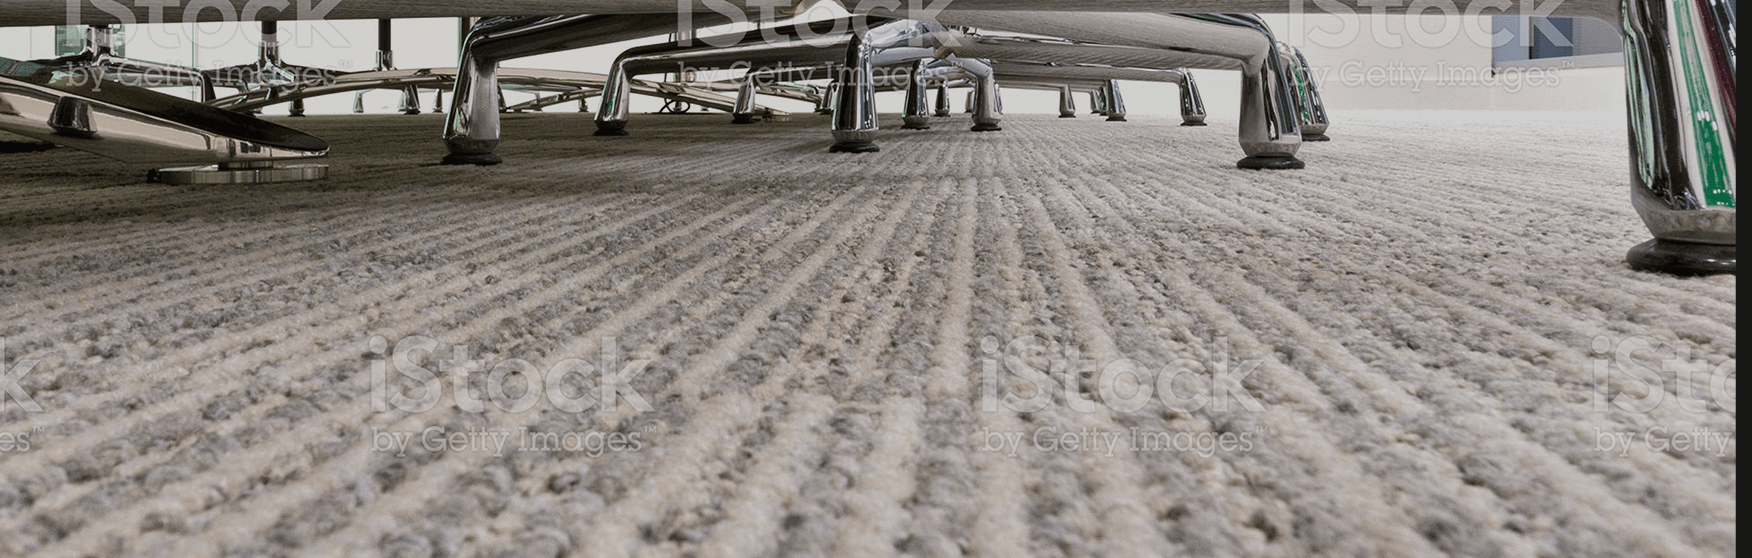 Commercial Flooring Contracts - Vinyl Flooring Colchester